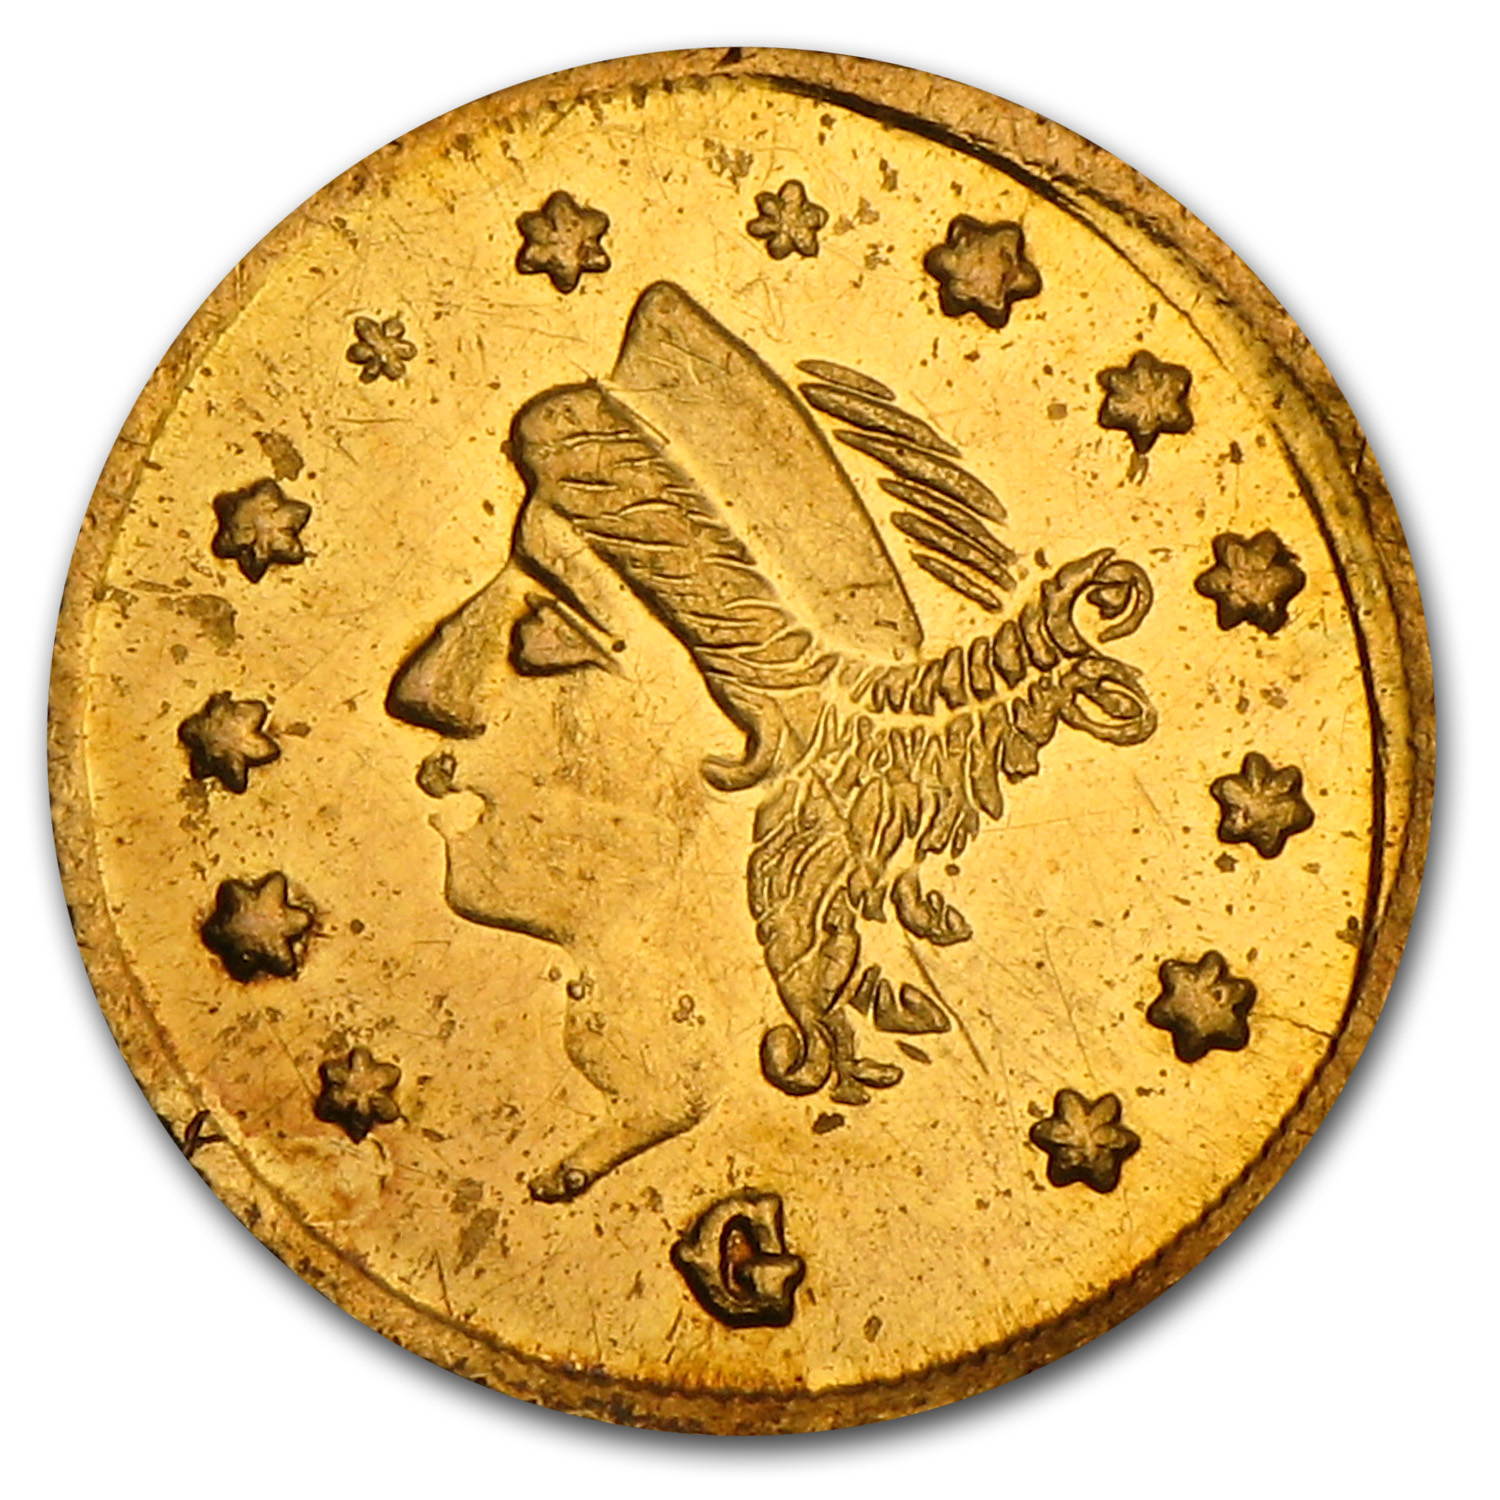 1867 Round Liberty 25 Cent Gold MS-61 (BG-825)